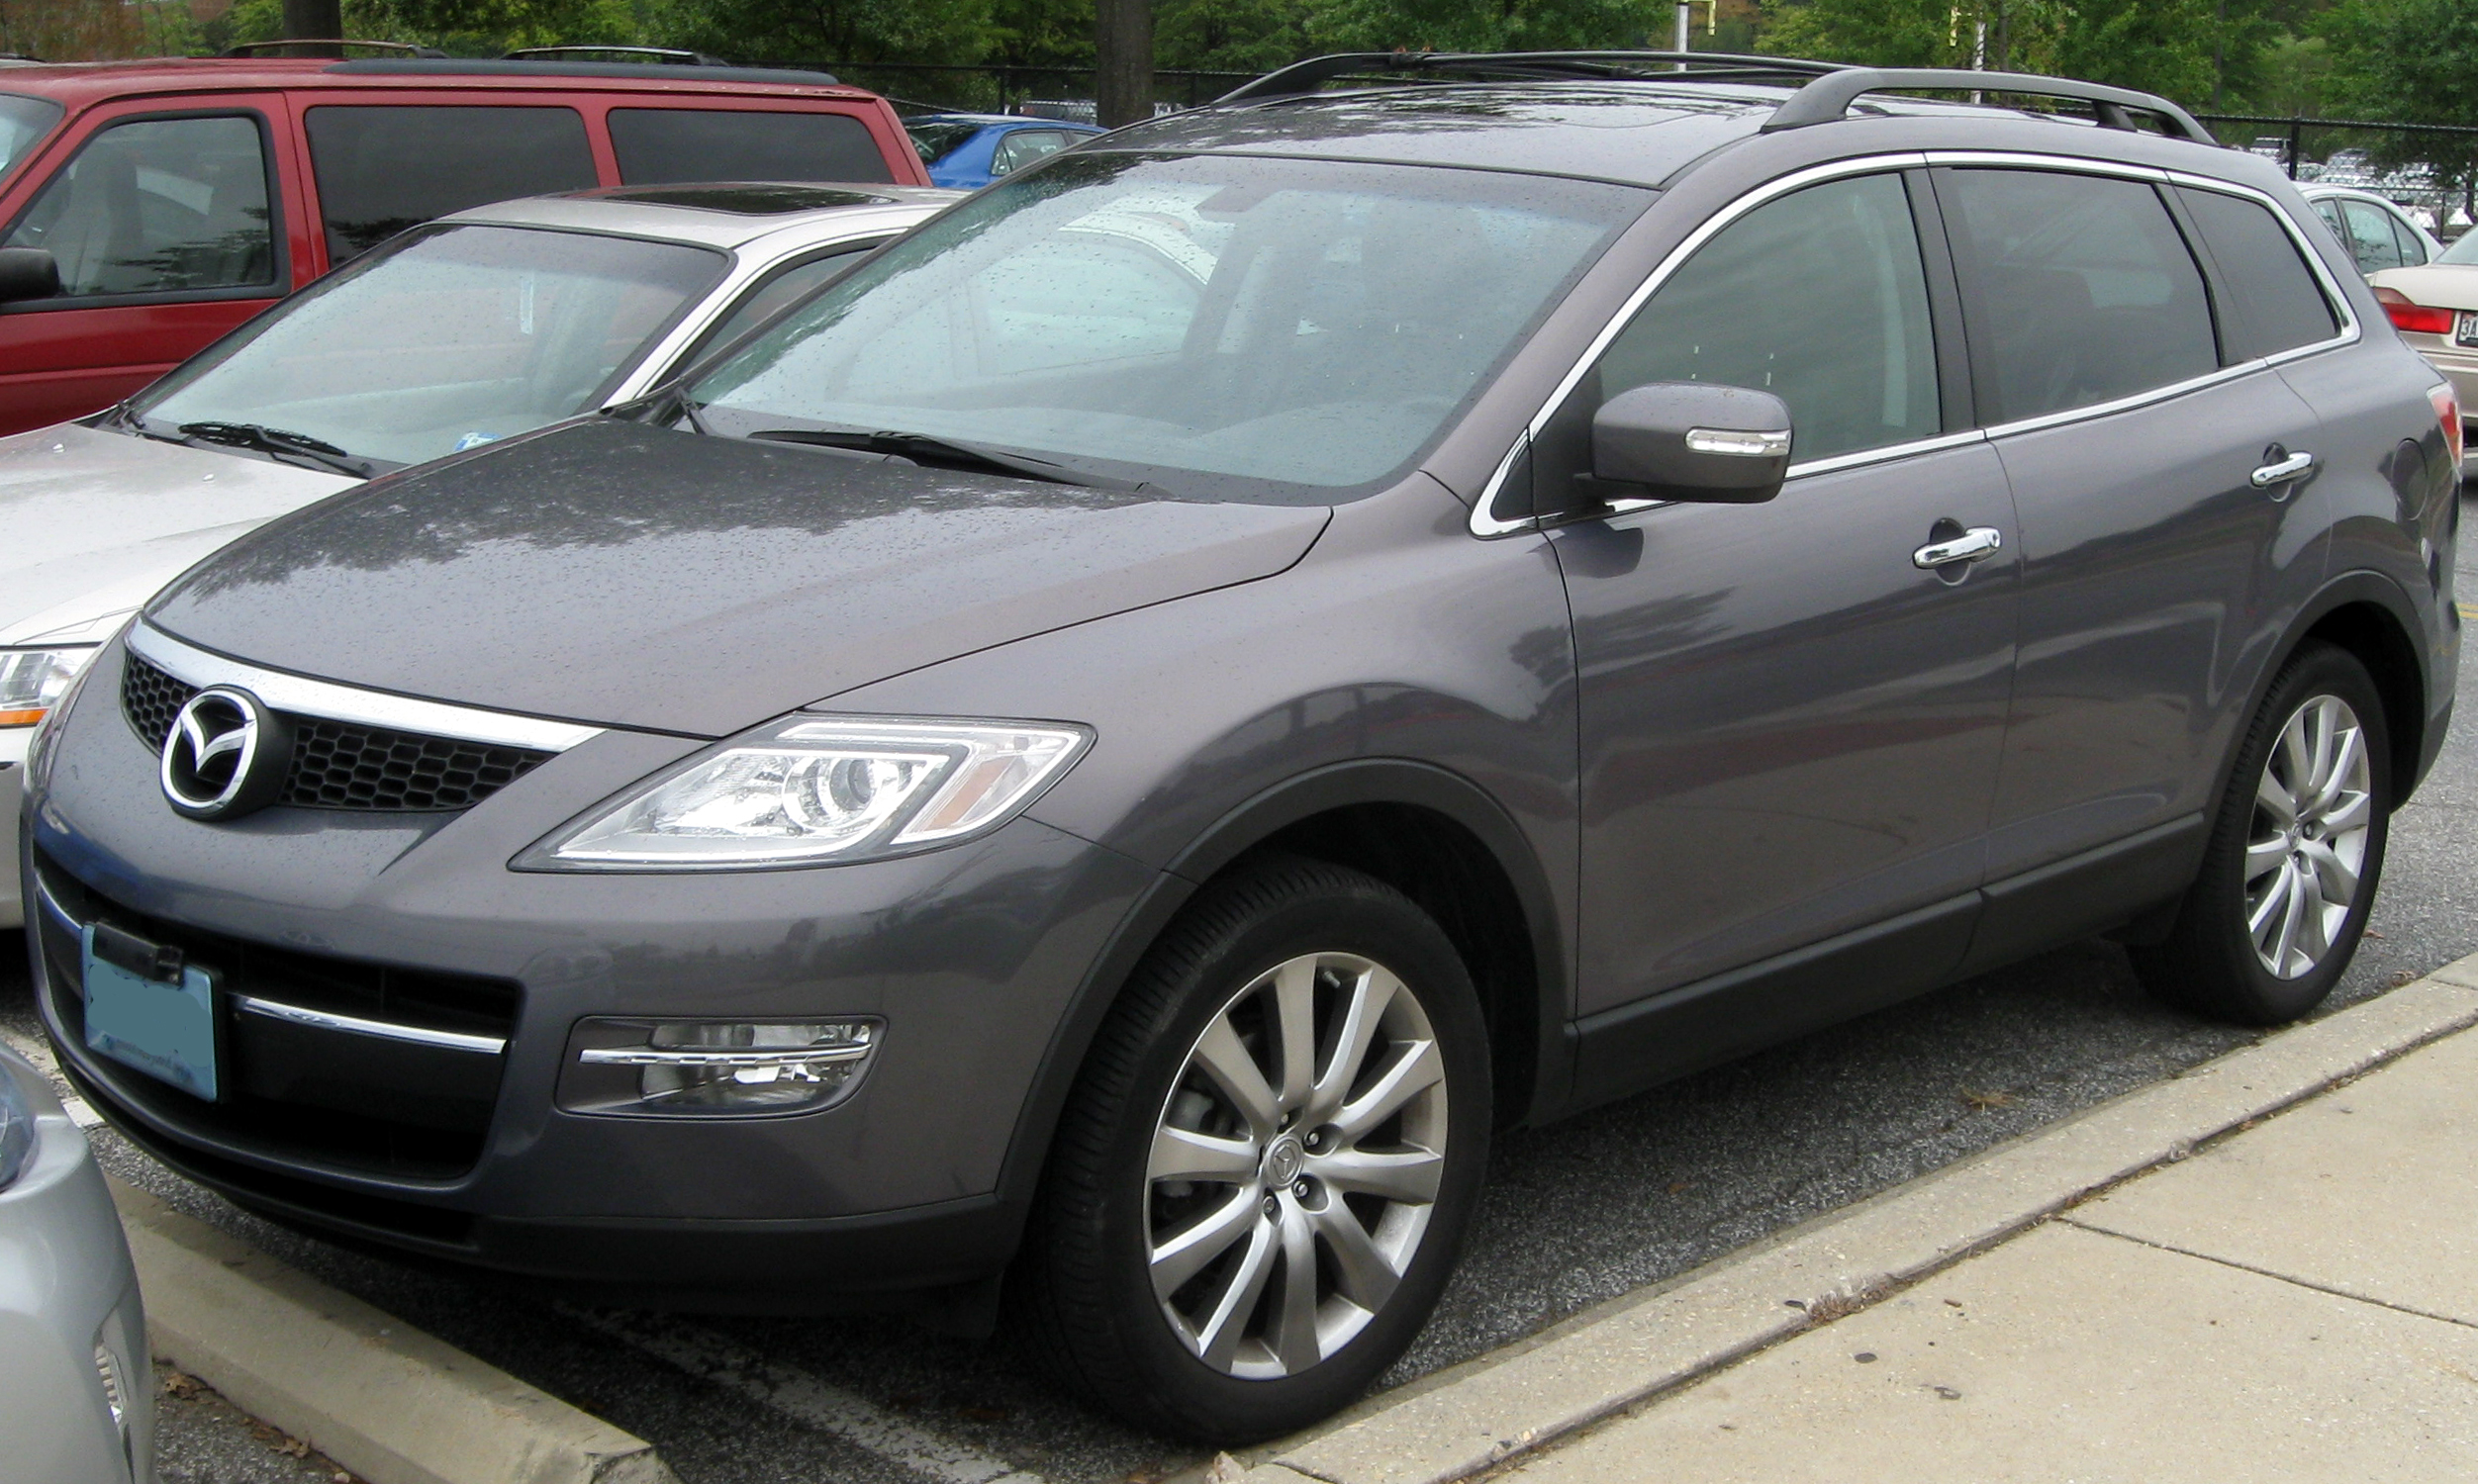 https://upload.wikimedia.org/wikipedia/commons/a/ac/2007-2009_Mazda_CX-9_--_09-29-2010.jpg